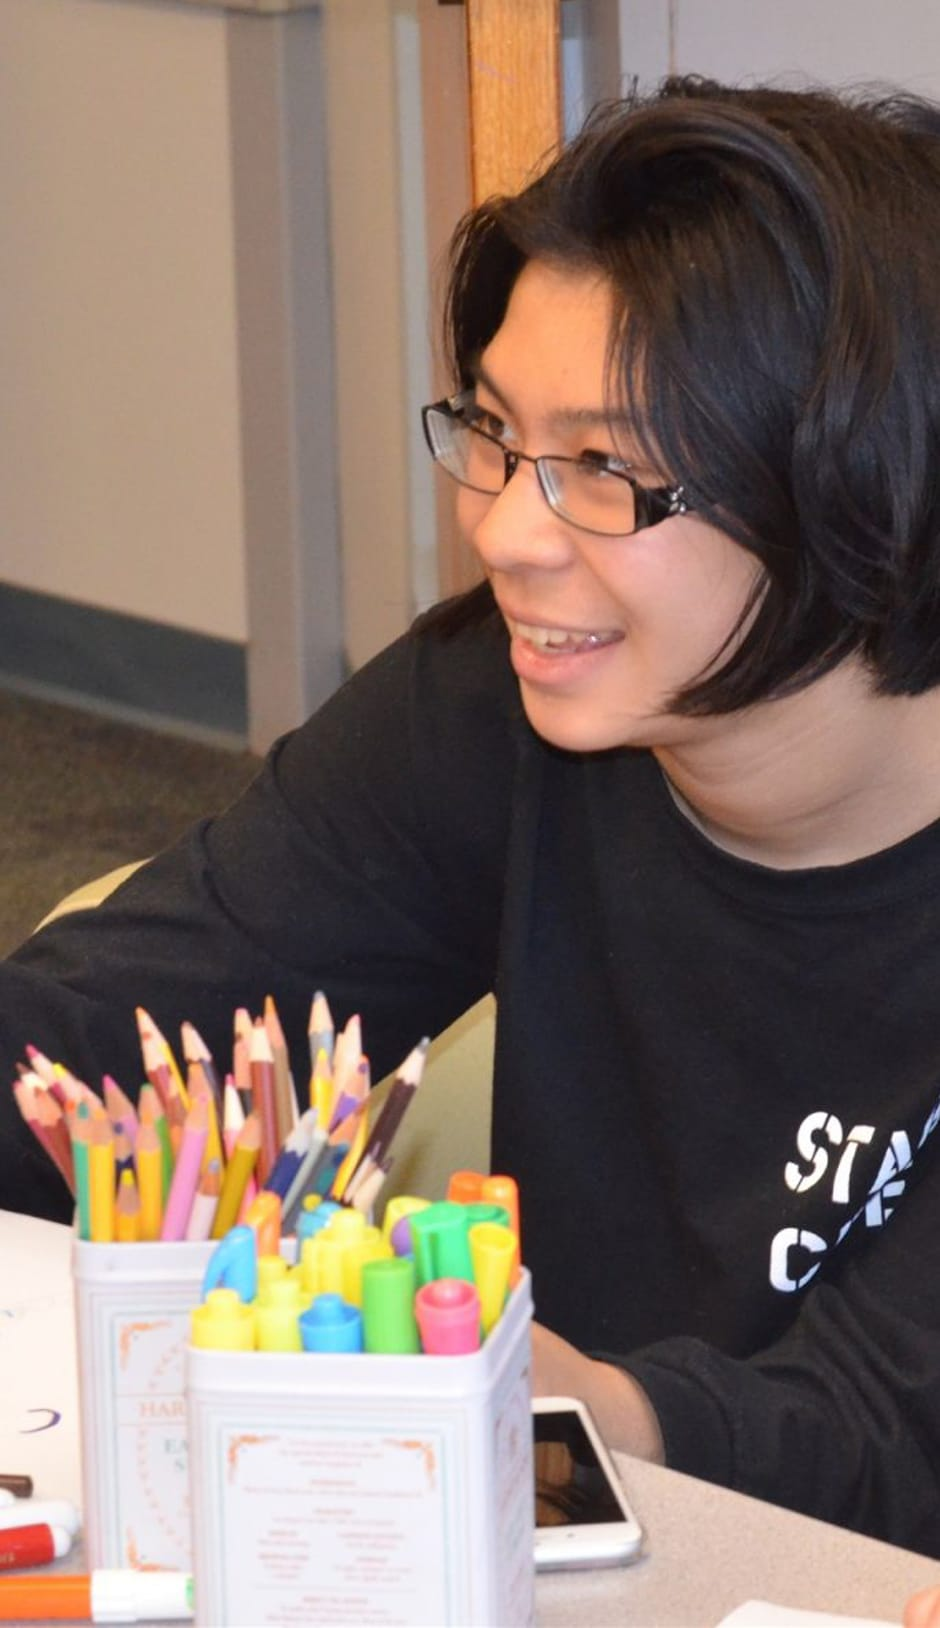 Student at Middle School Reading with colored pencils in front